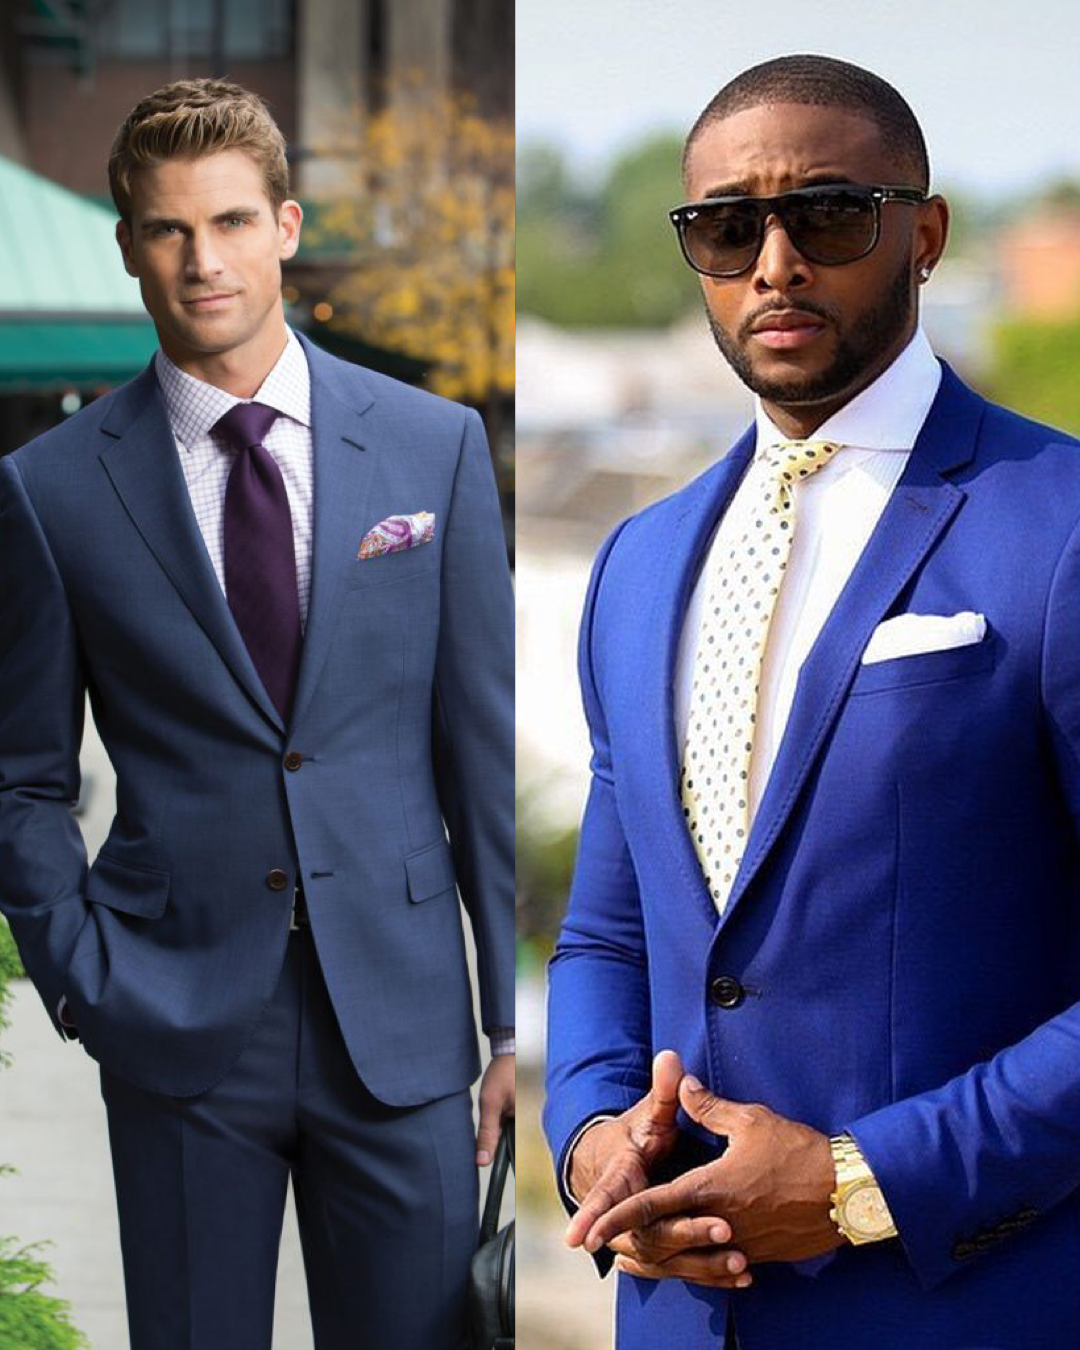 Man in a Gray Suit and Man in a Blue Suit